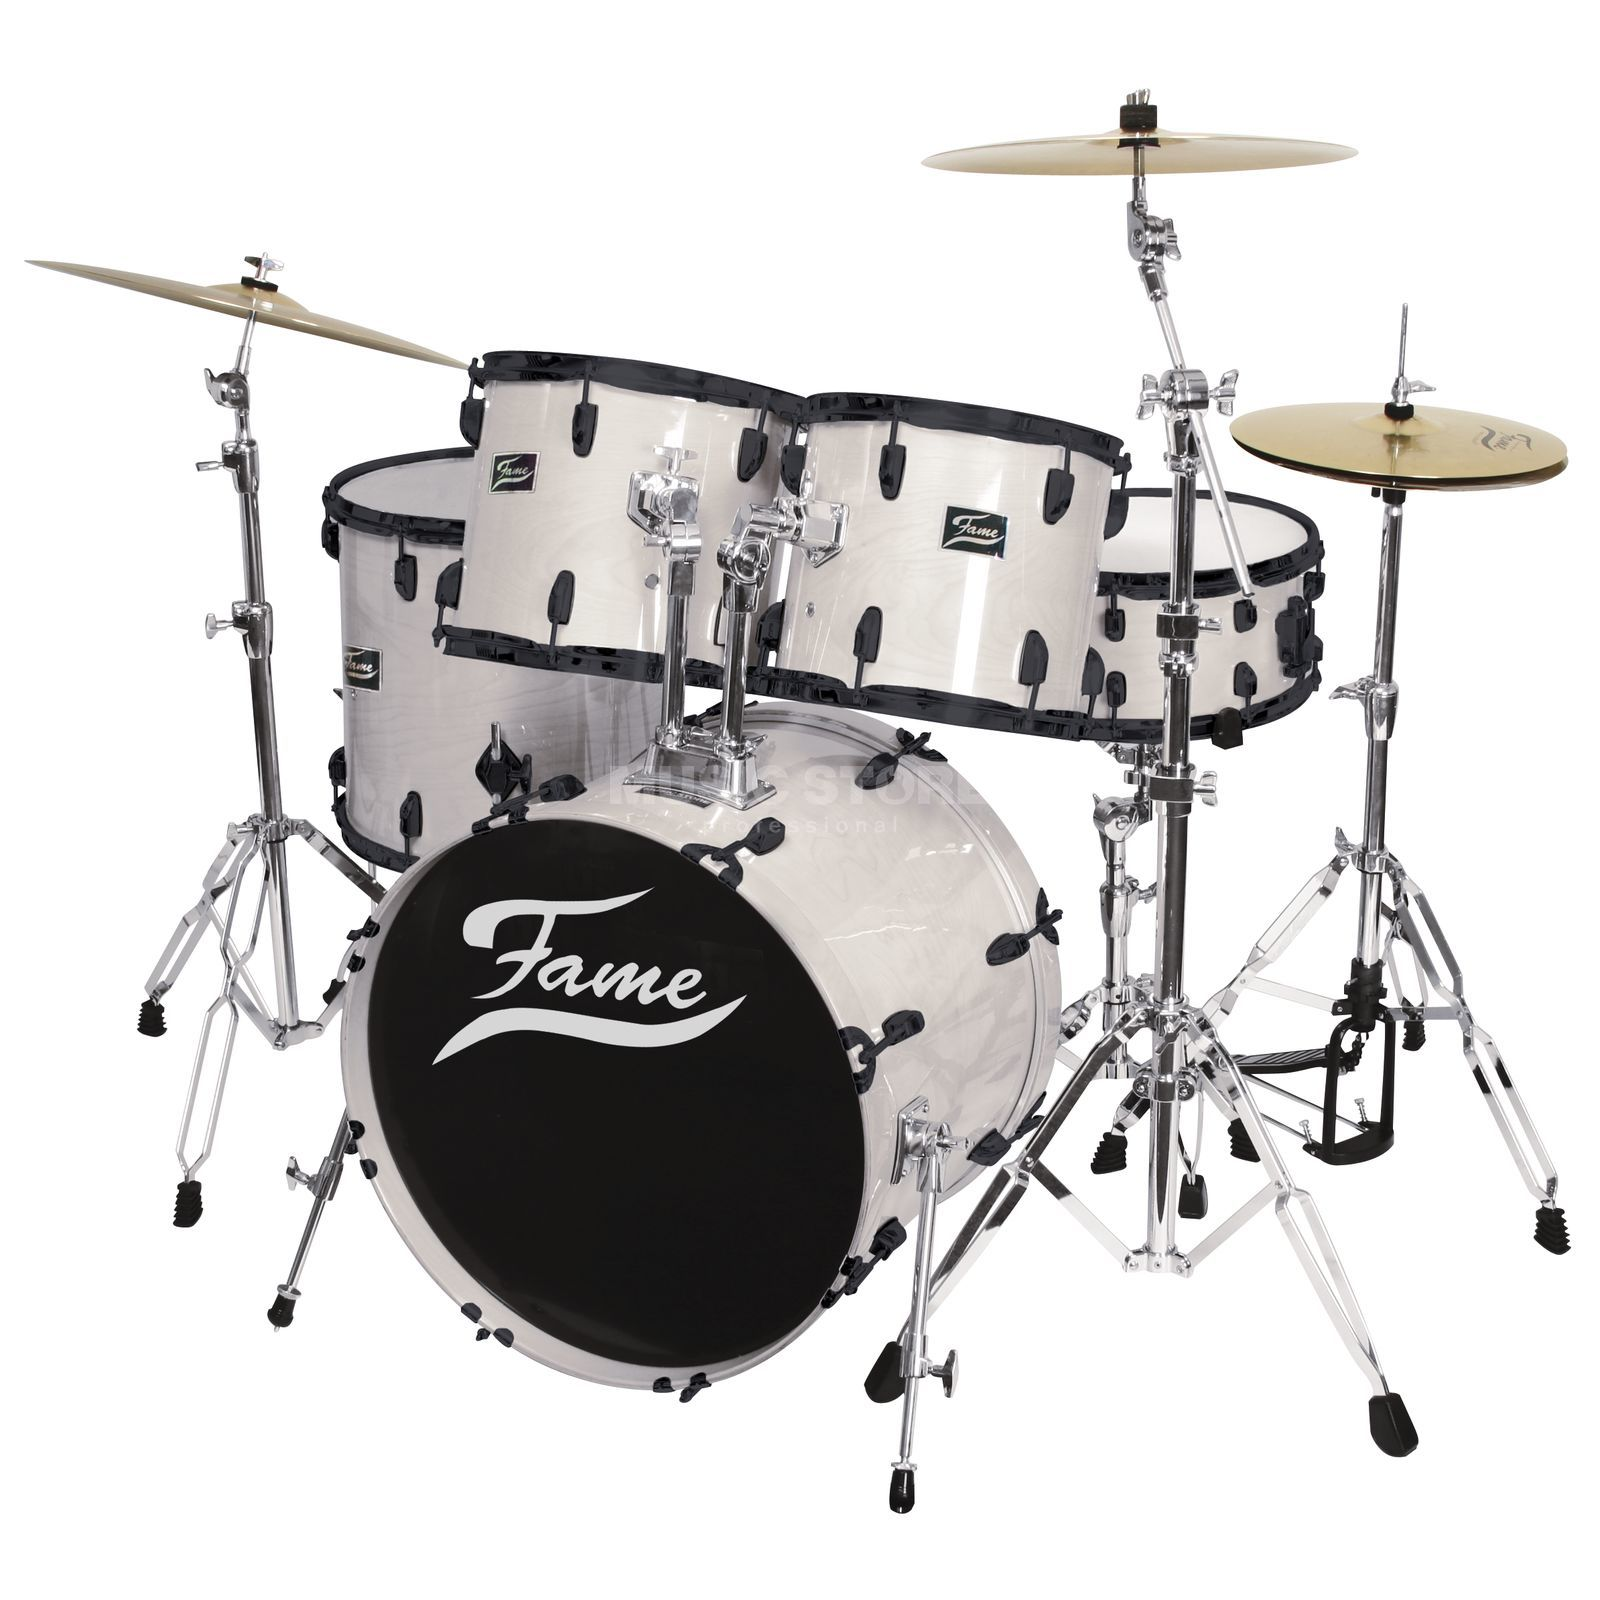 Fame Maple Standard Set 5201, #White Laquer, Black HW Produktbillede